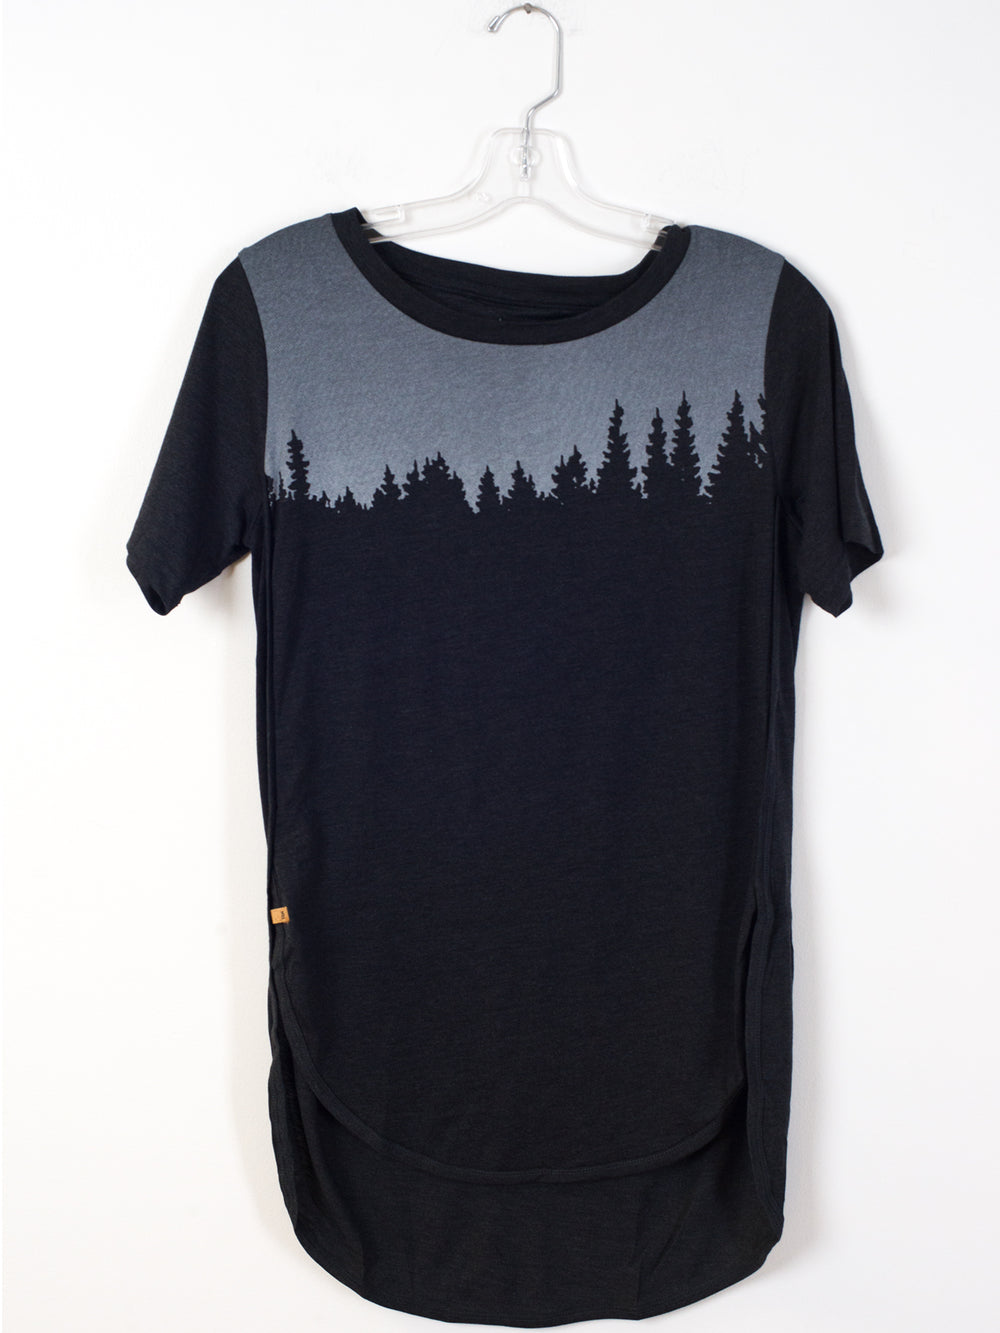 WOMENS JUNIPER CURVER SHORT SLEEVE TEE - BLACK